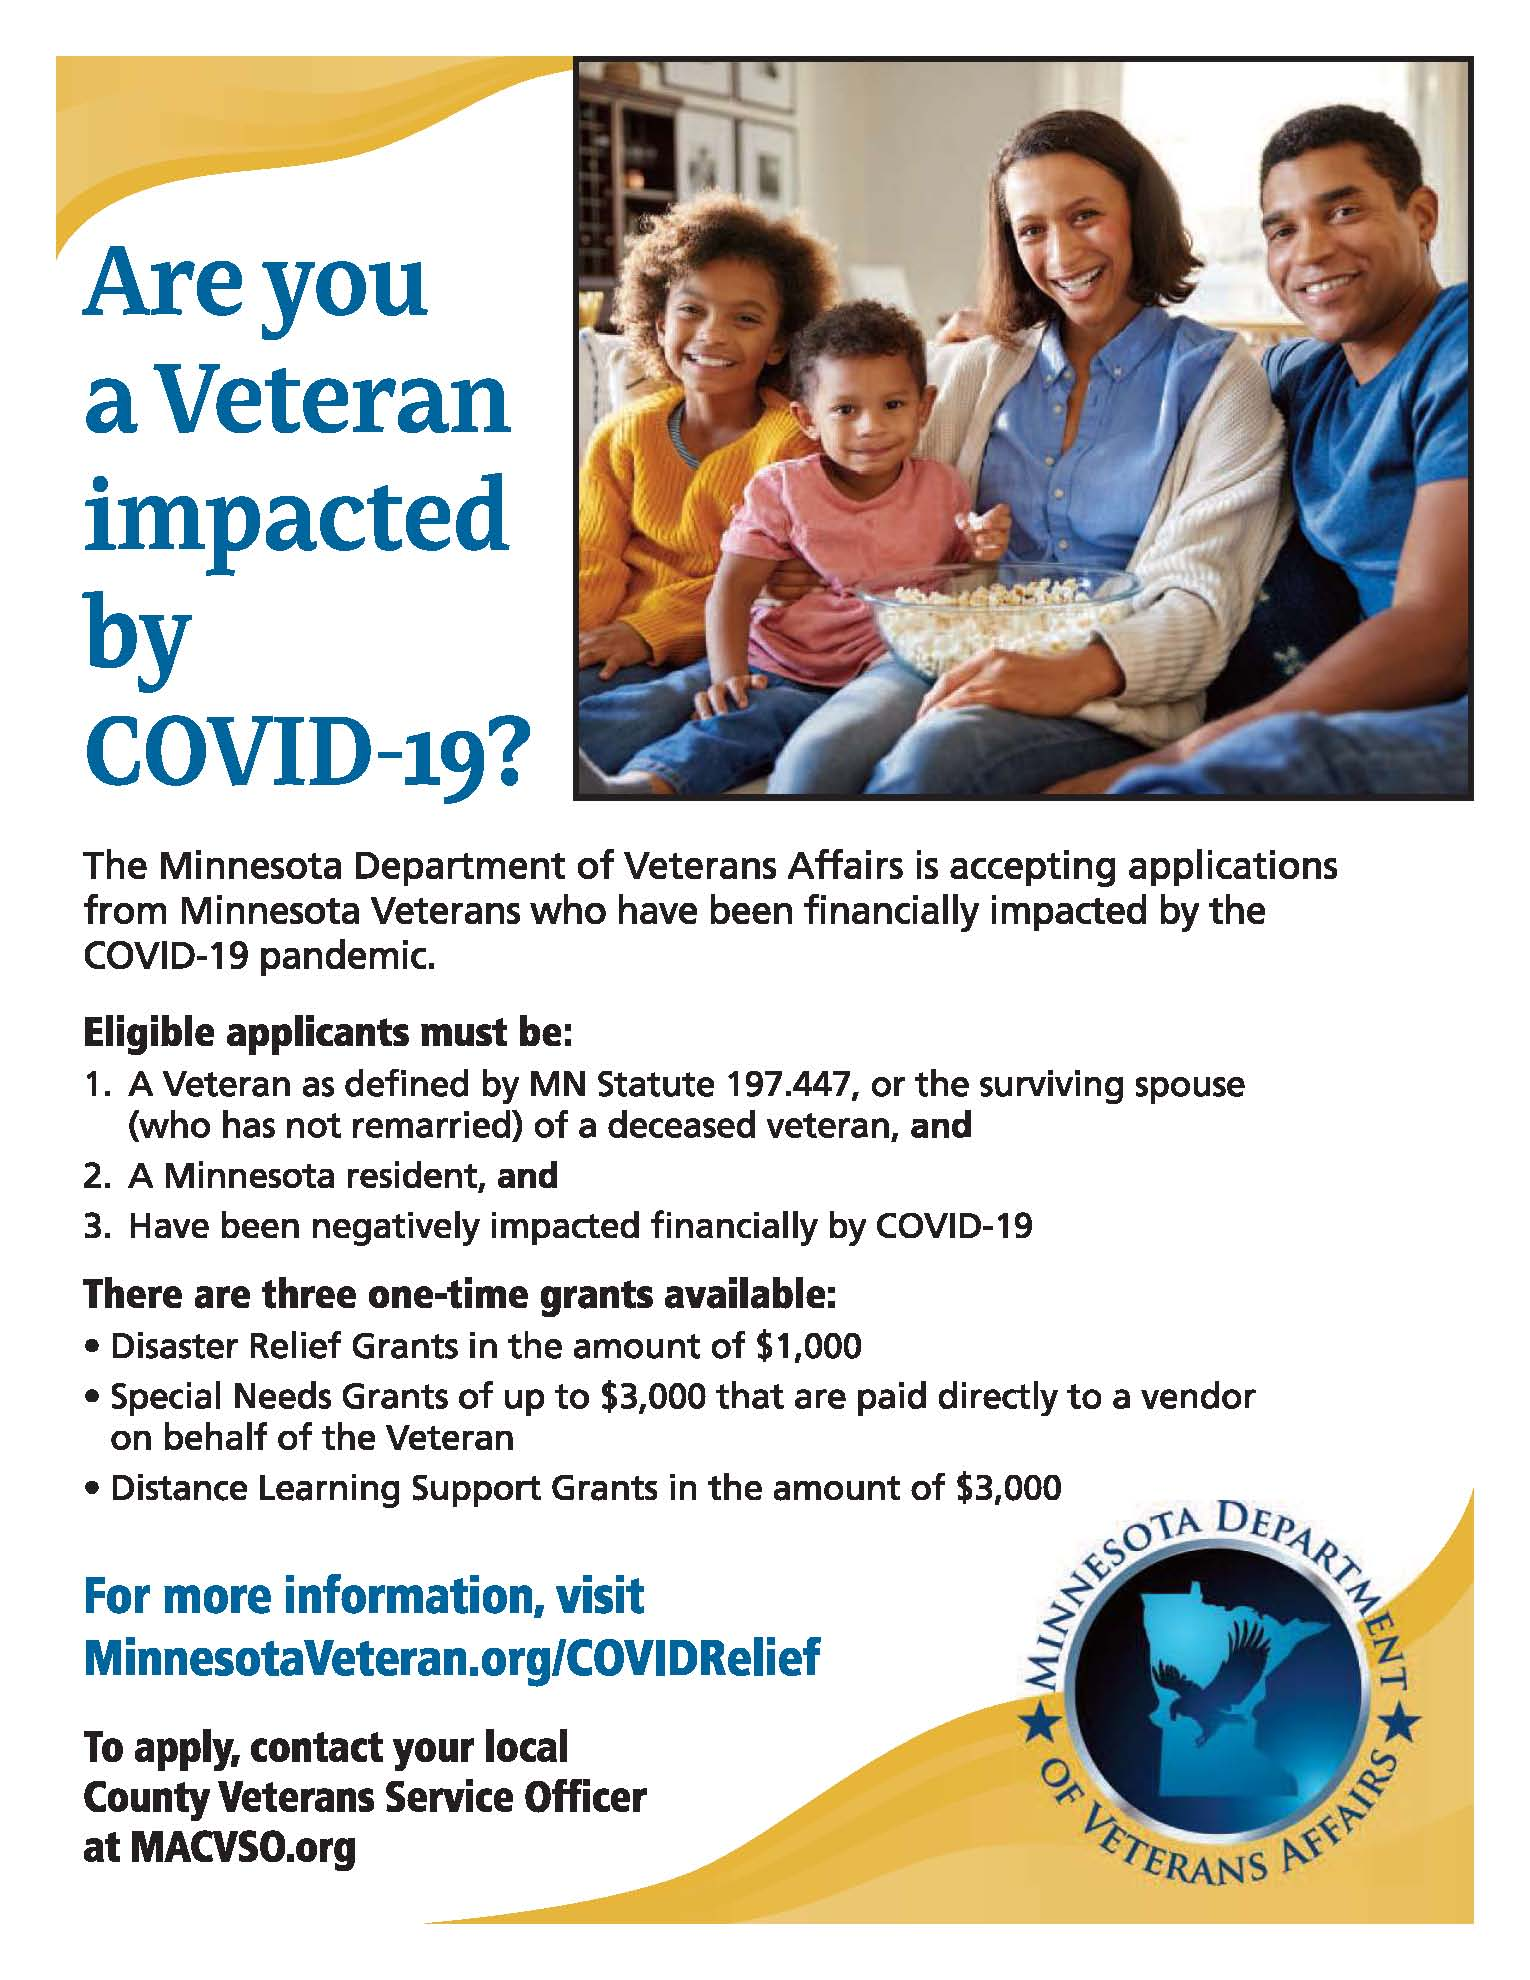 Veteran impact by COVID-19 newsletter